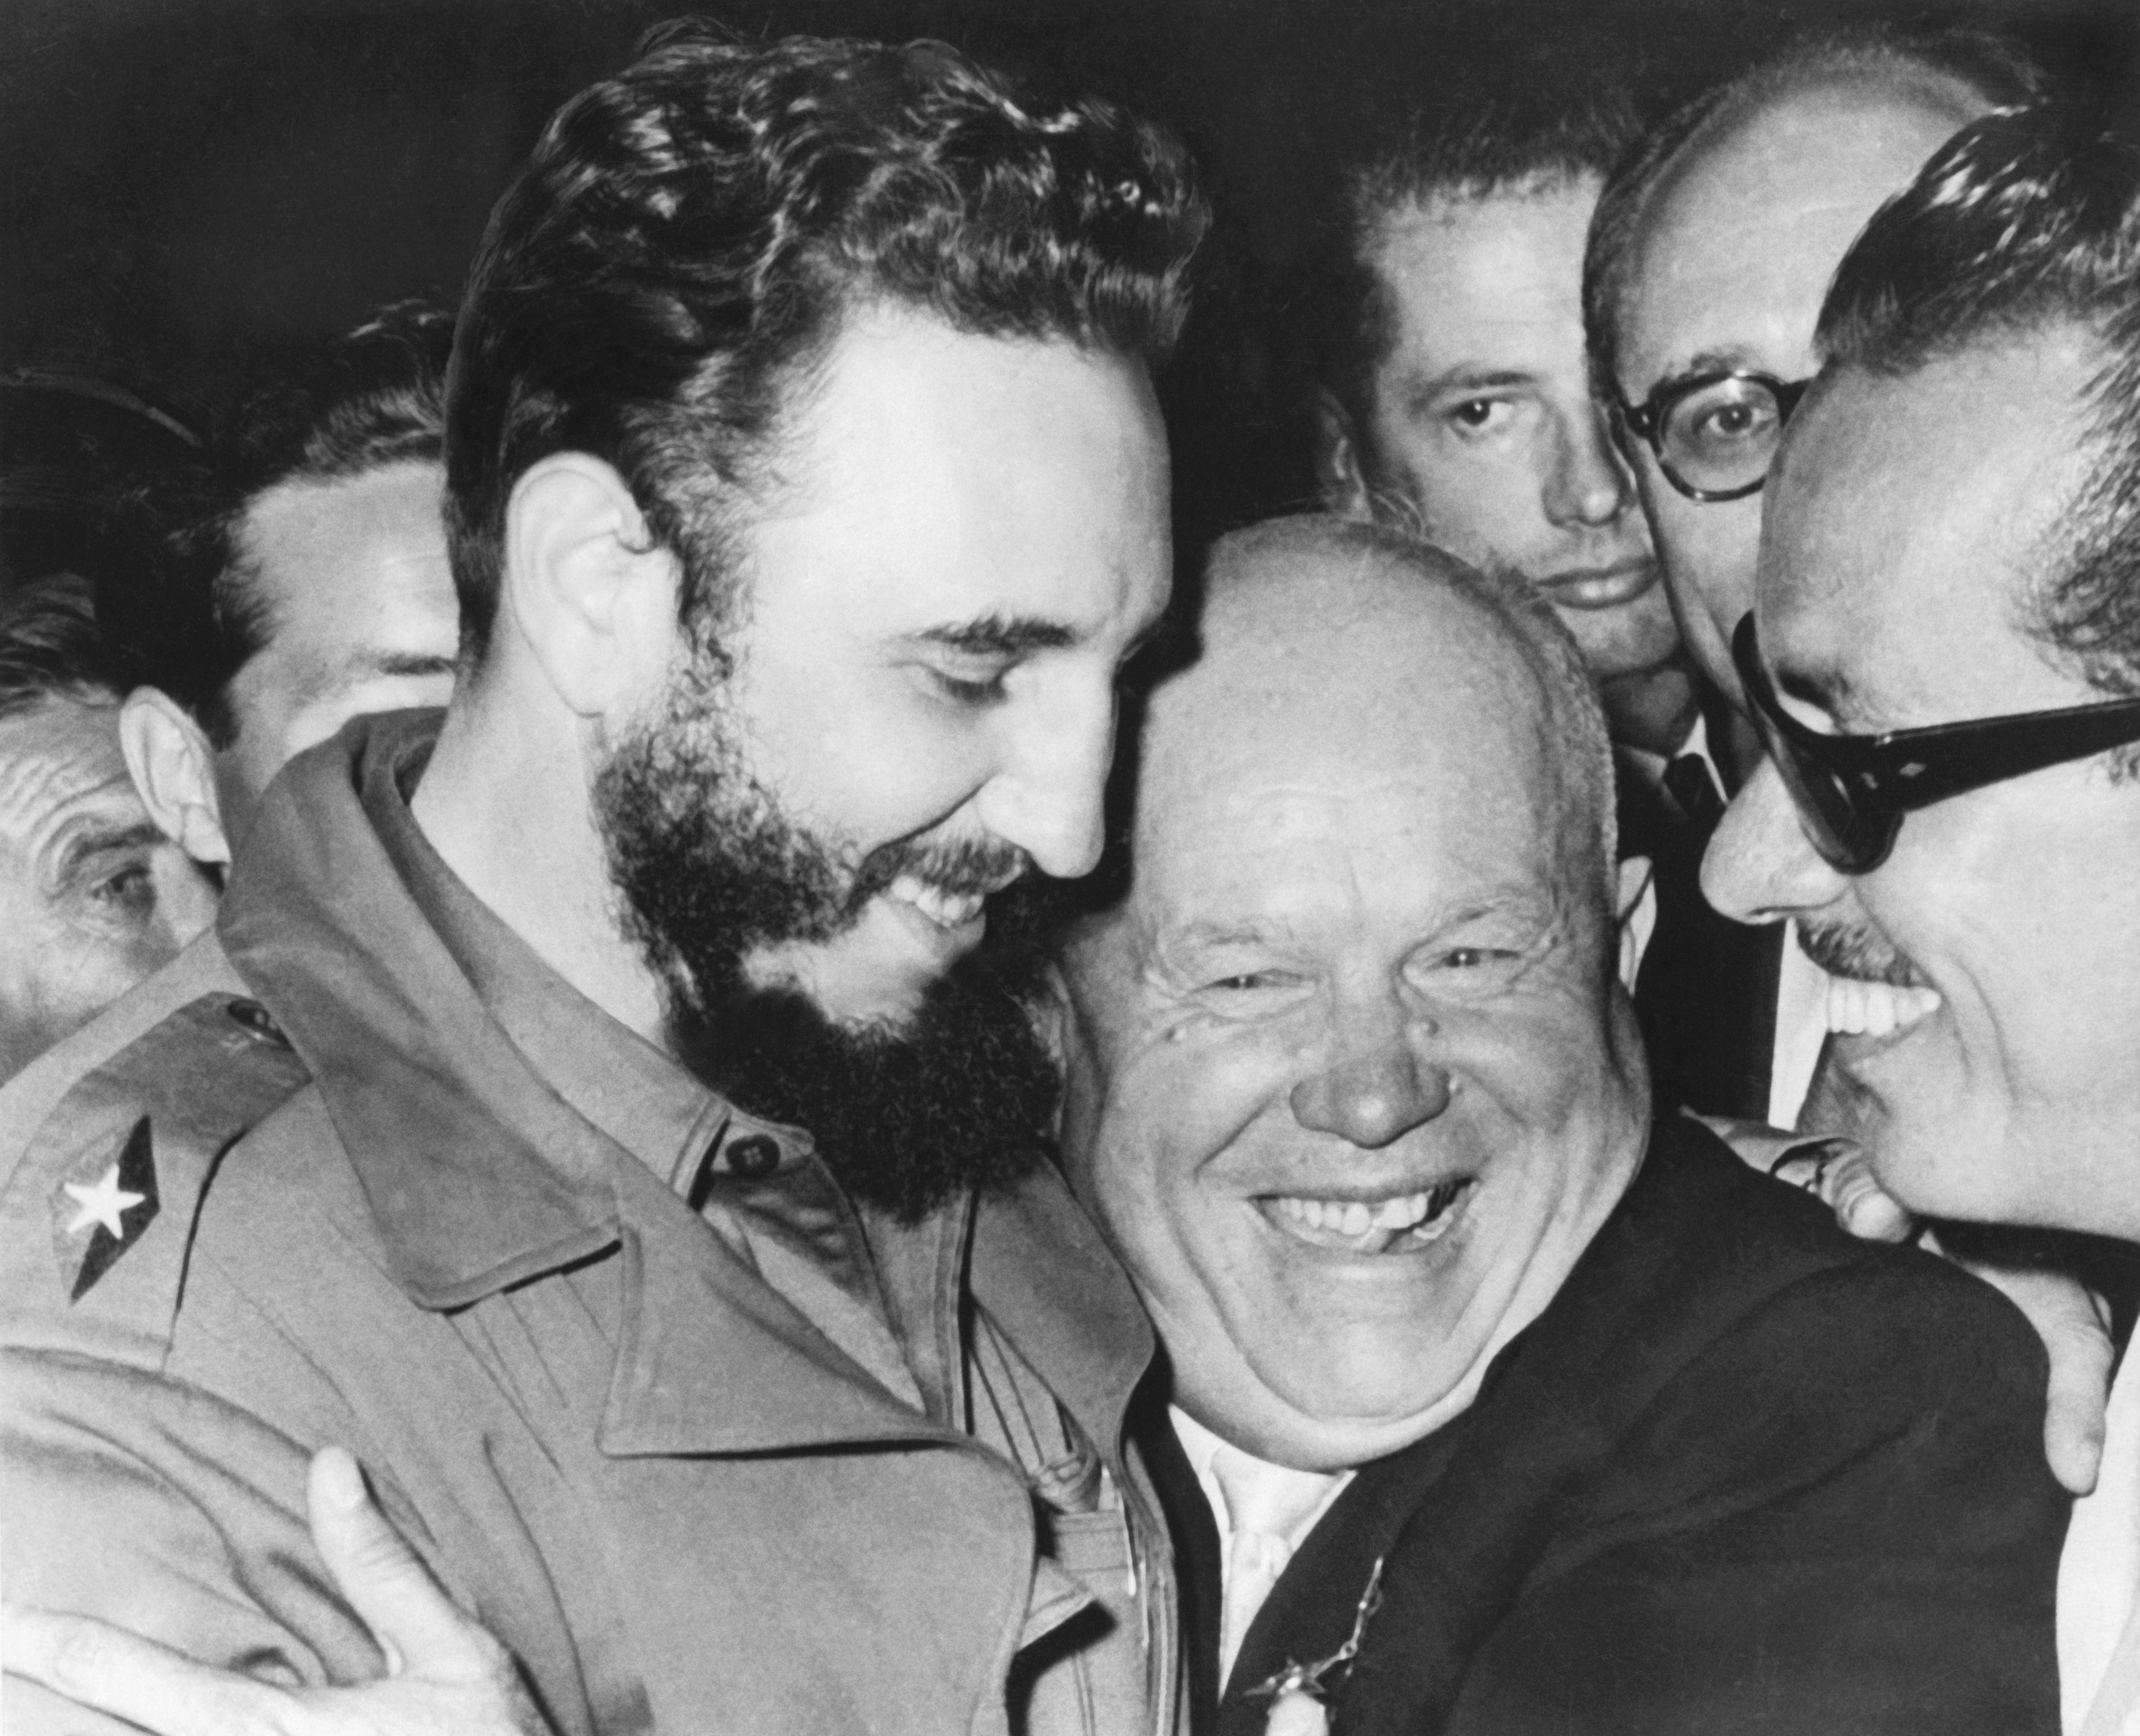 A jovial greeting takes place between Cuba's Prime MInister Fidel Castro and Soviet Union's Premier Nikita Khrushchev when they met at the United Nations today, New York, New York, September 20, 1960. (Photo by Underwood Archives/Getty Images)